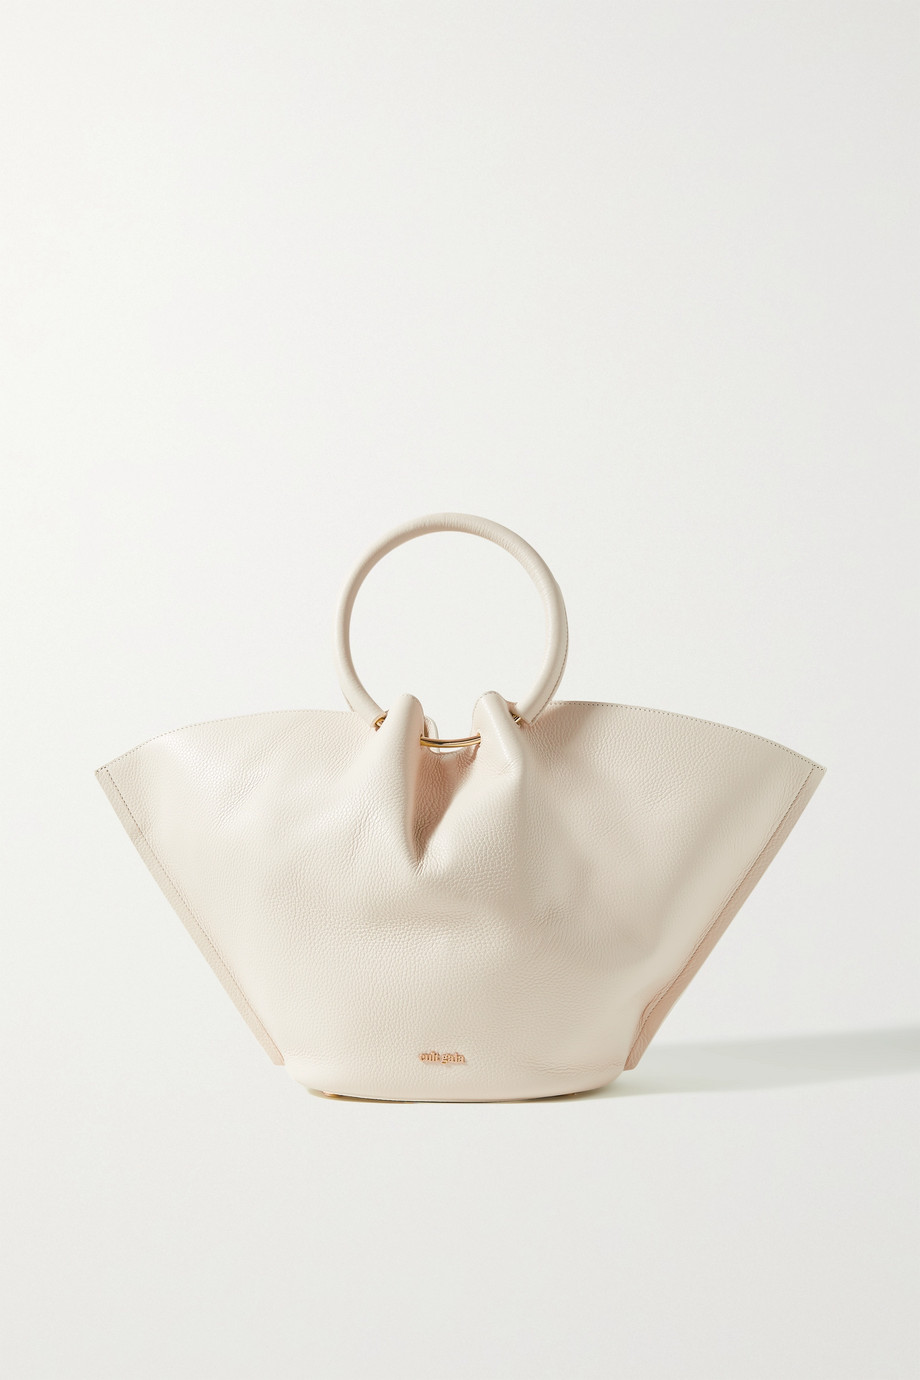 Cult Gaia Valeska gathered textured-leather tote